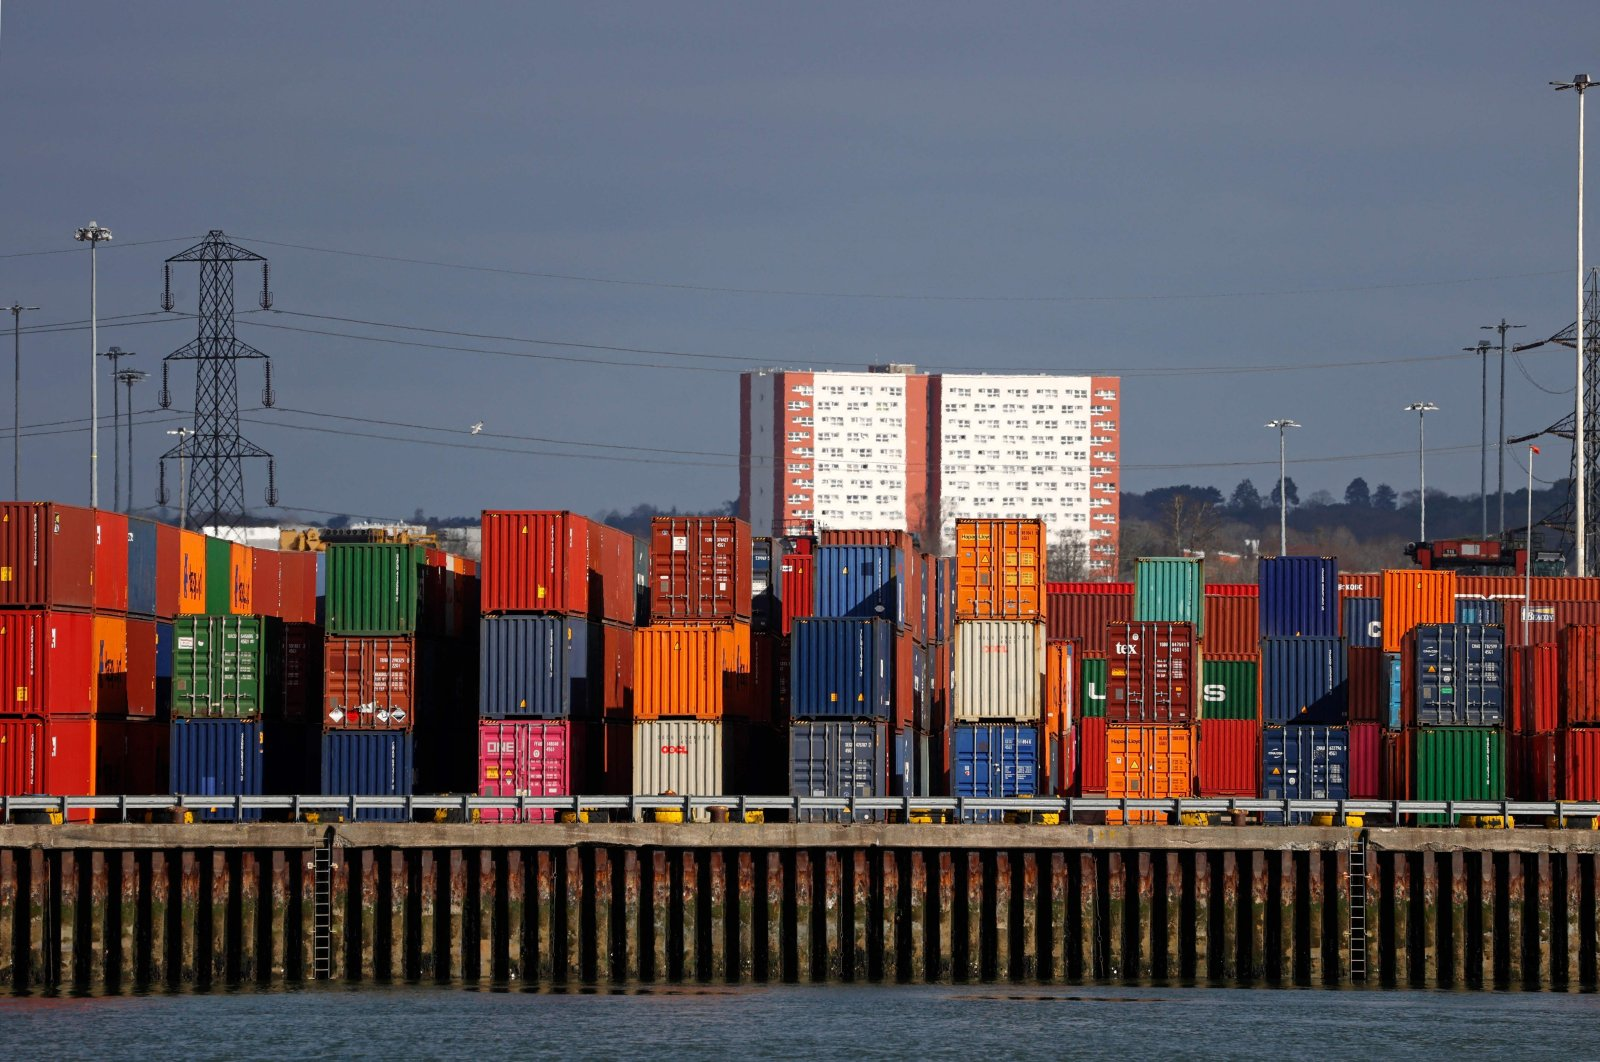 Shipping containers at the Port of Southampton, on the south coast of England, March 5, 2021. (AFP Photo)